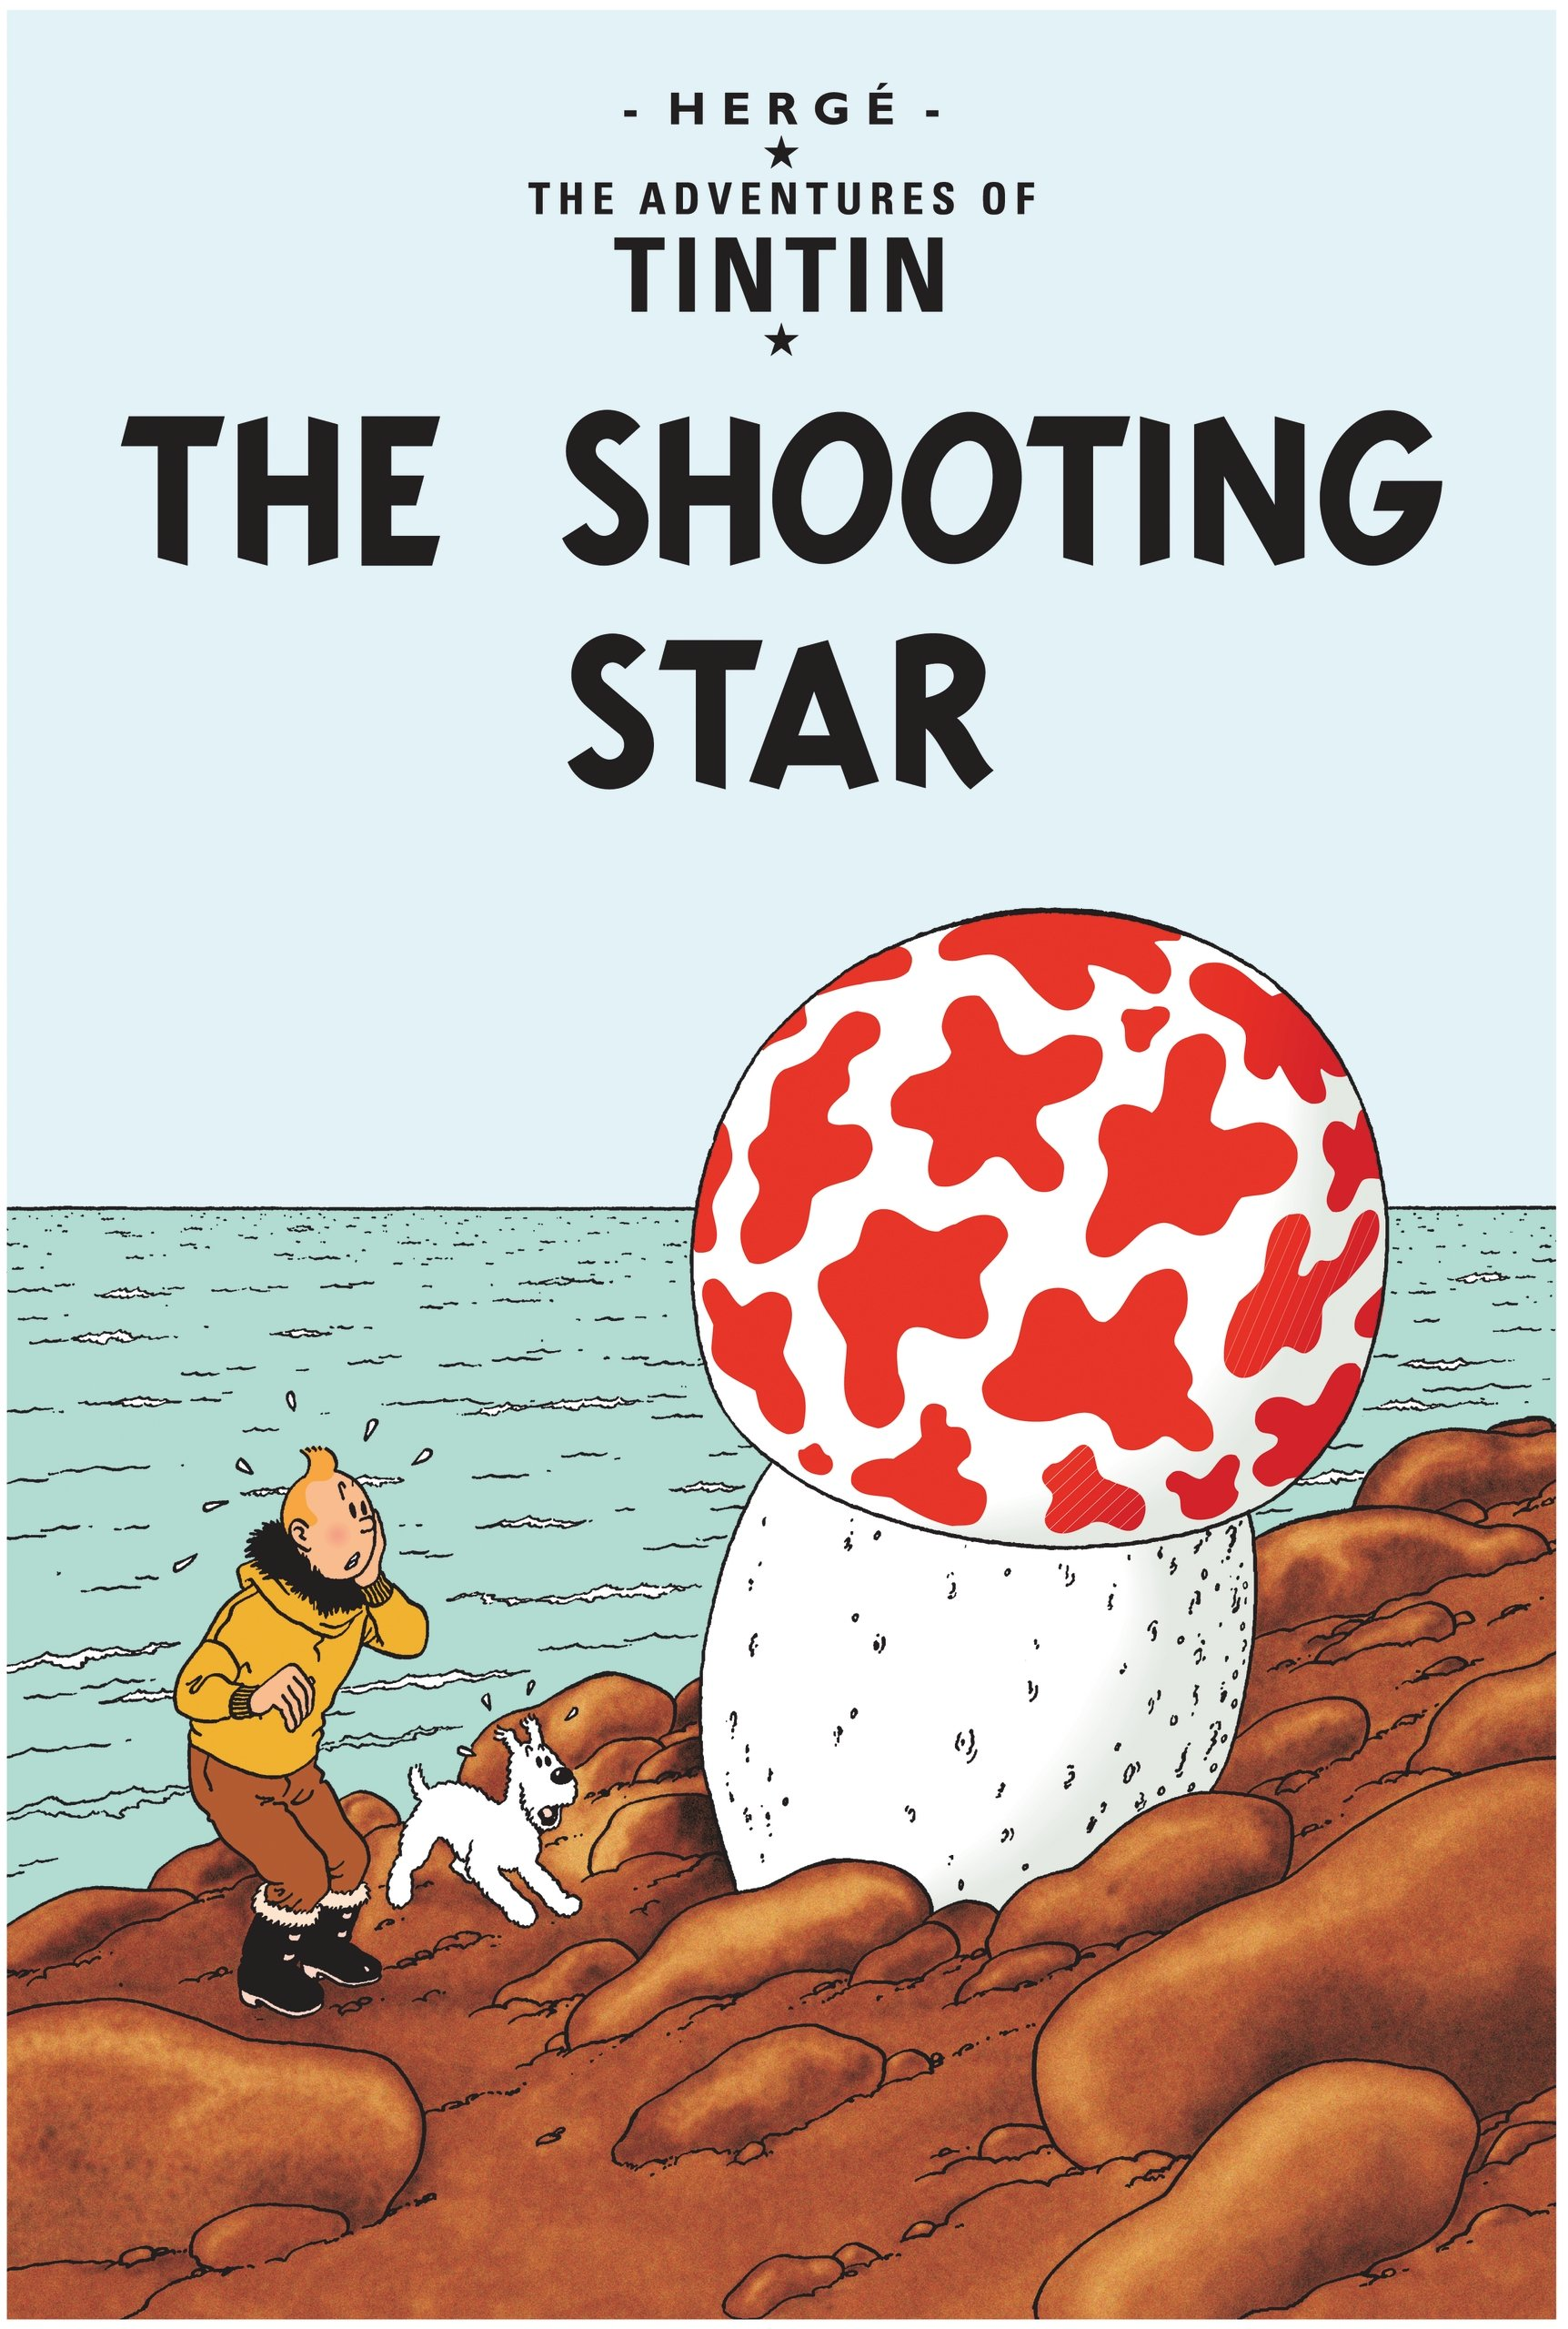 The shooting star (Inglese) Album – 4 nov 2002 Hergé Egmont Books 1405206217 Interest age: from c 9 years